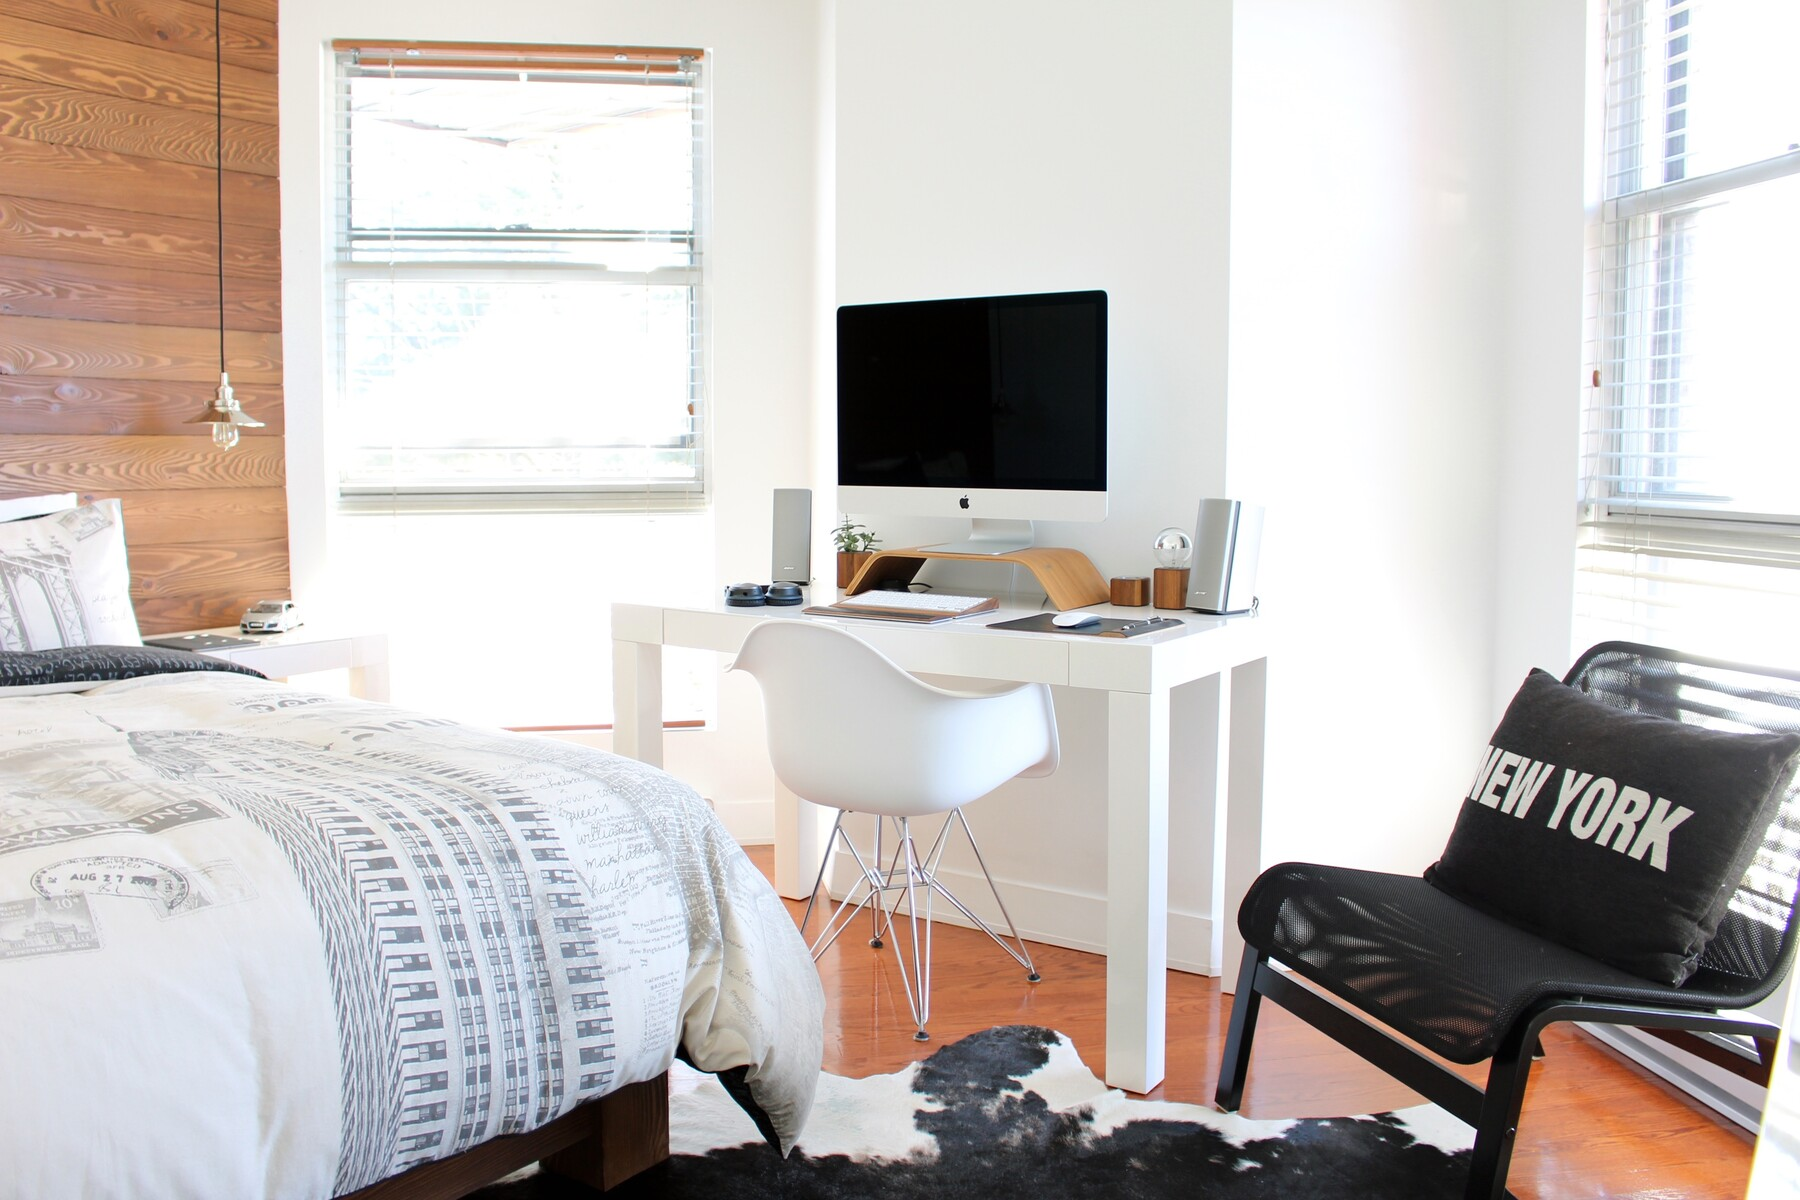 Home office guide: Setting up a home office - NotebookCheck.net News